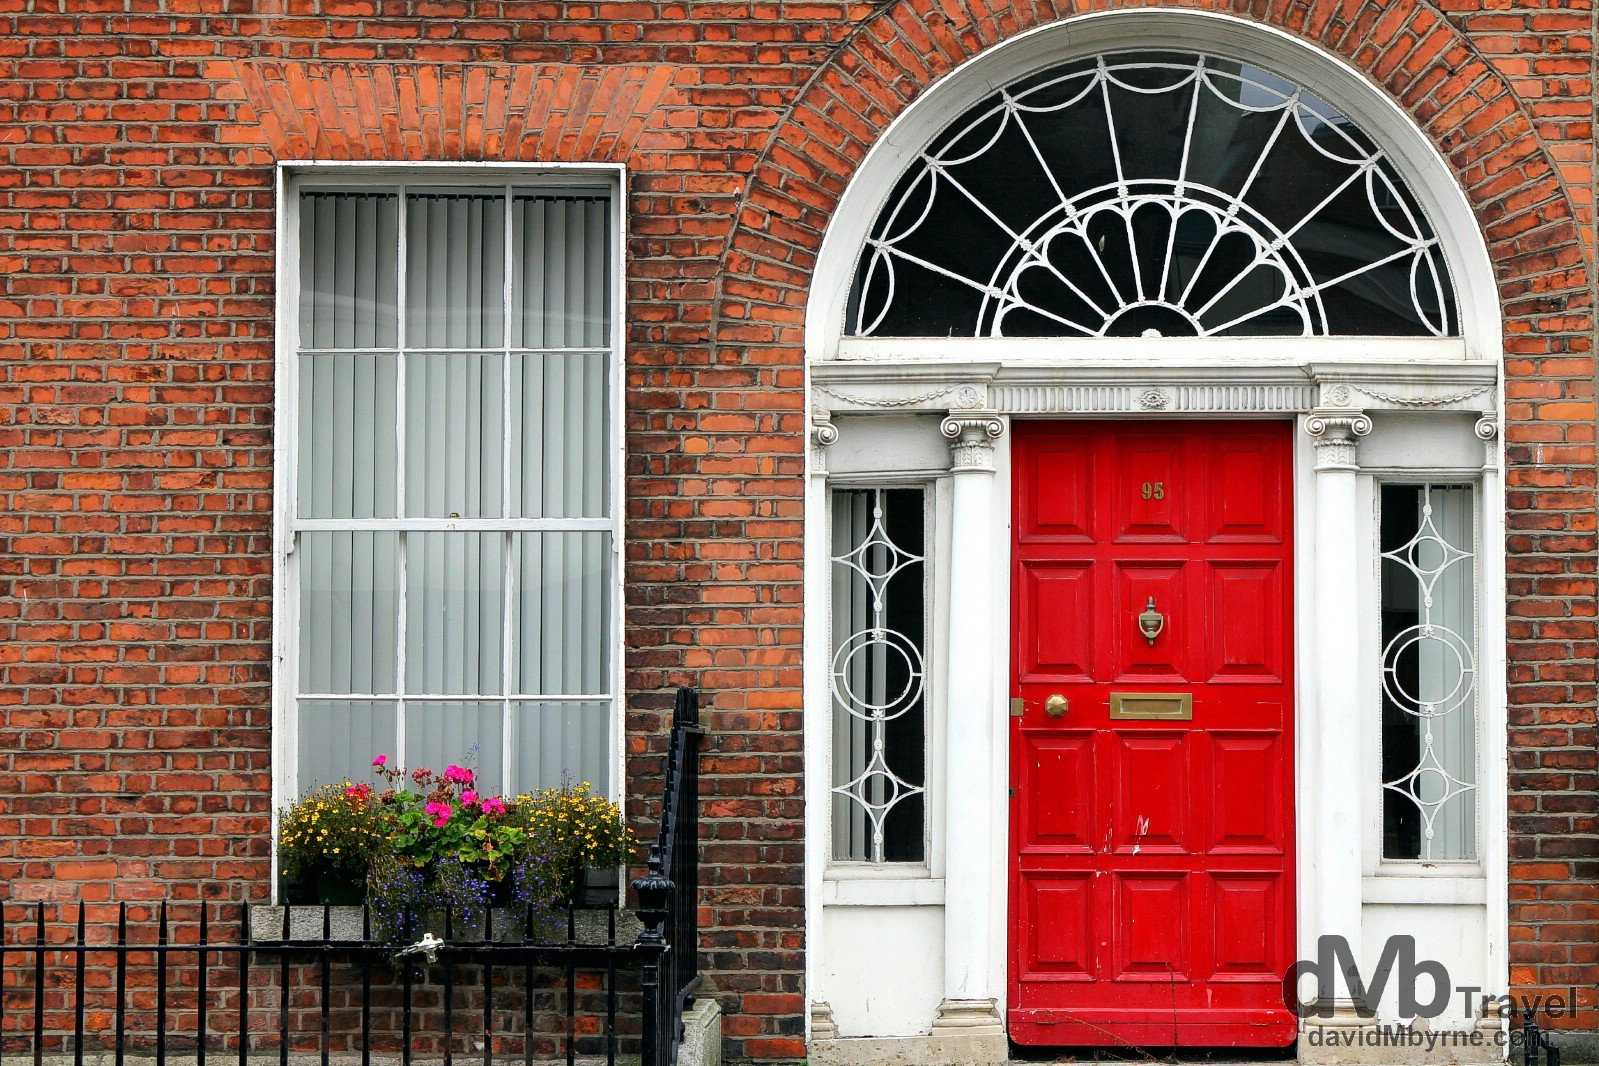 Georgian architecture on Leeson Street Lower, Dublin, Ireland. September 1, 2014.